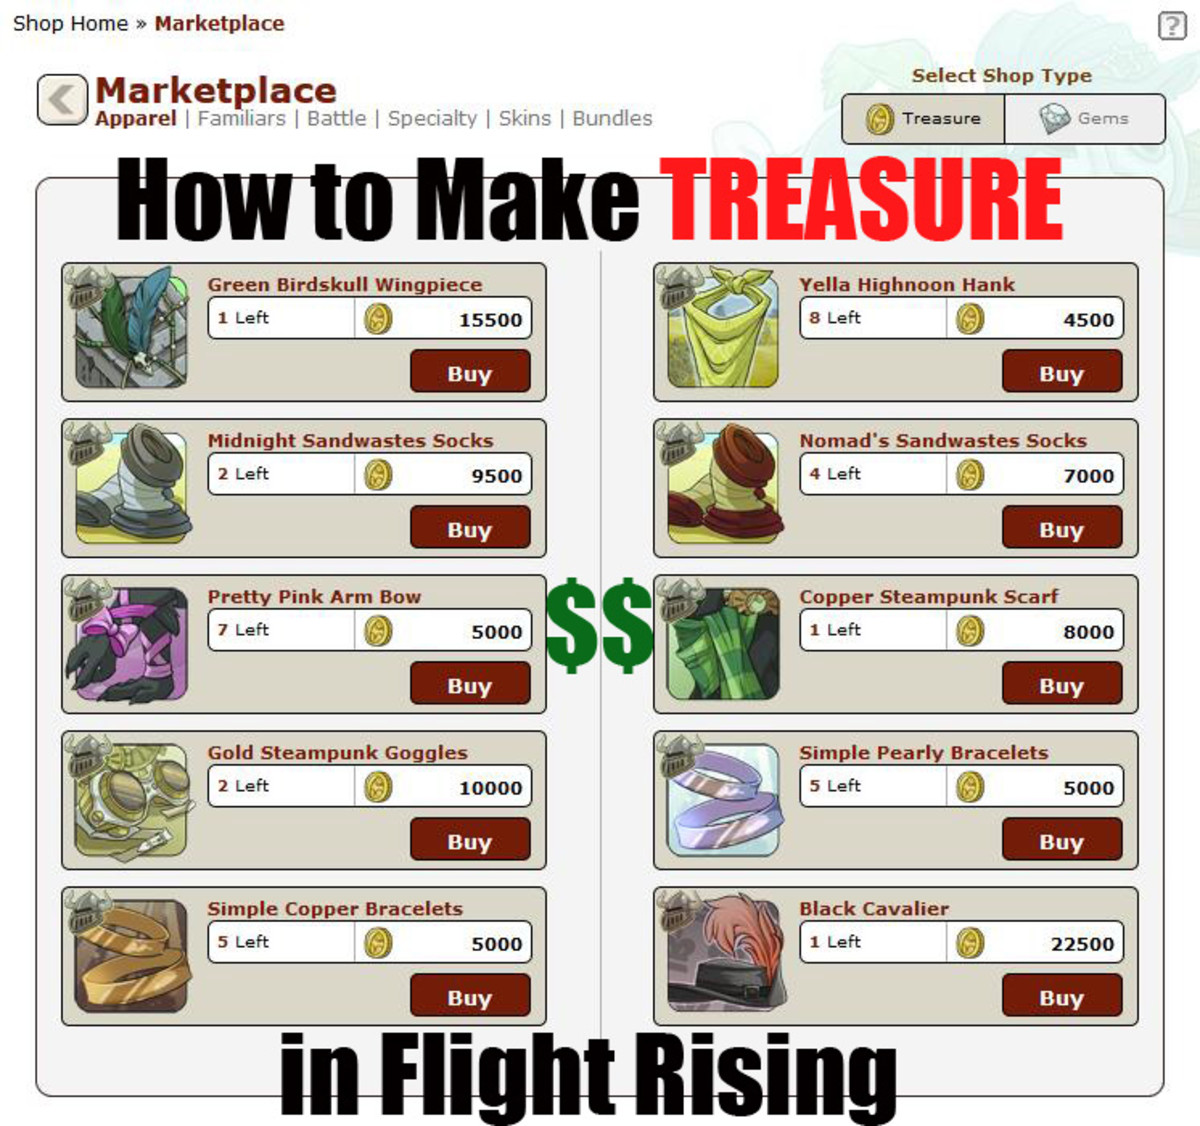 How to Make Treasure in Flight Rising